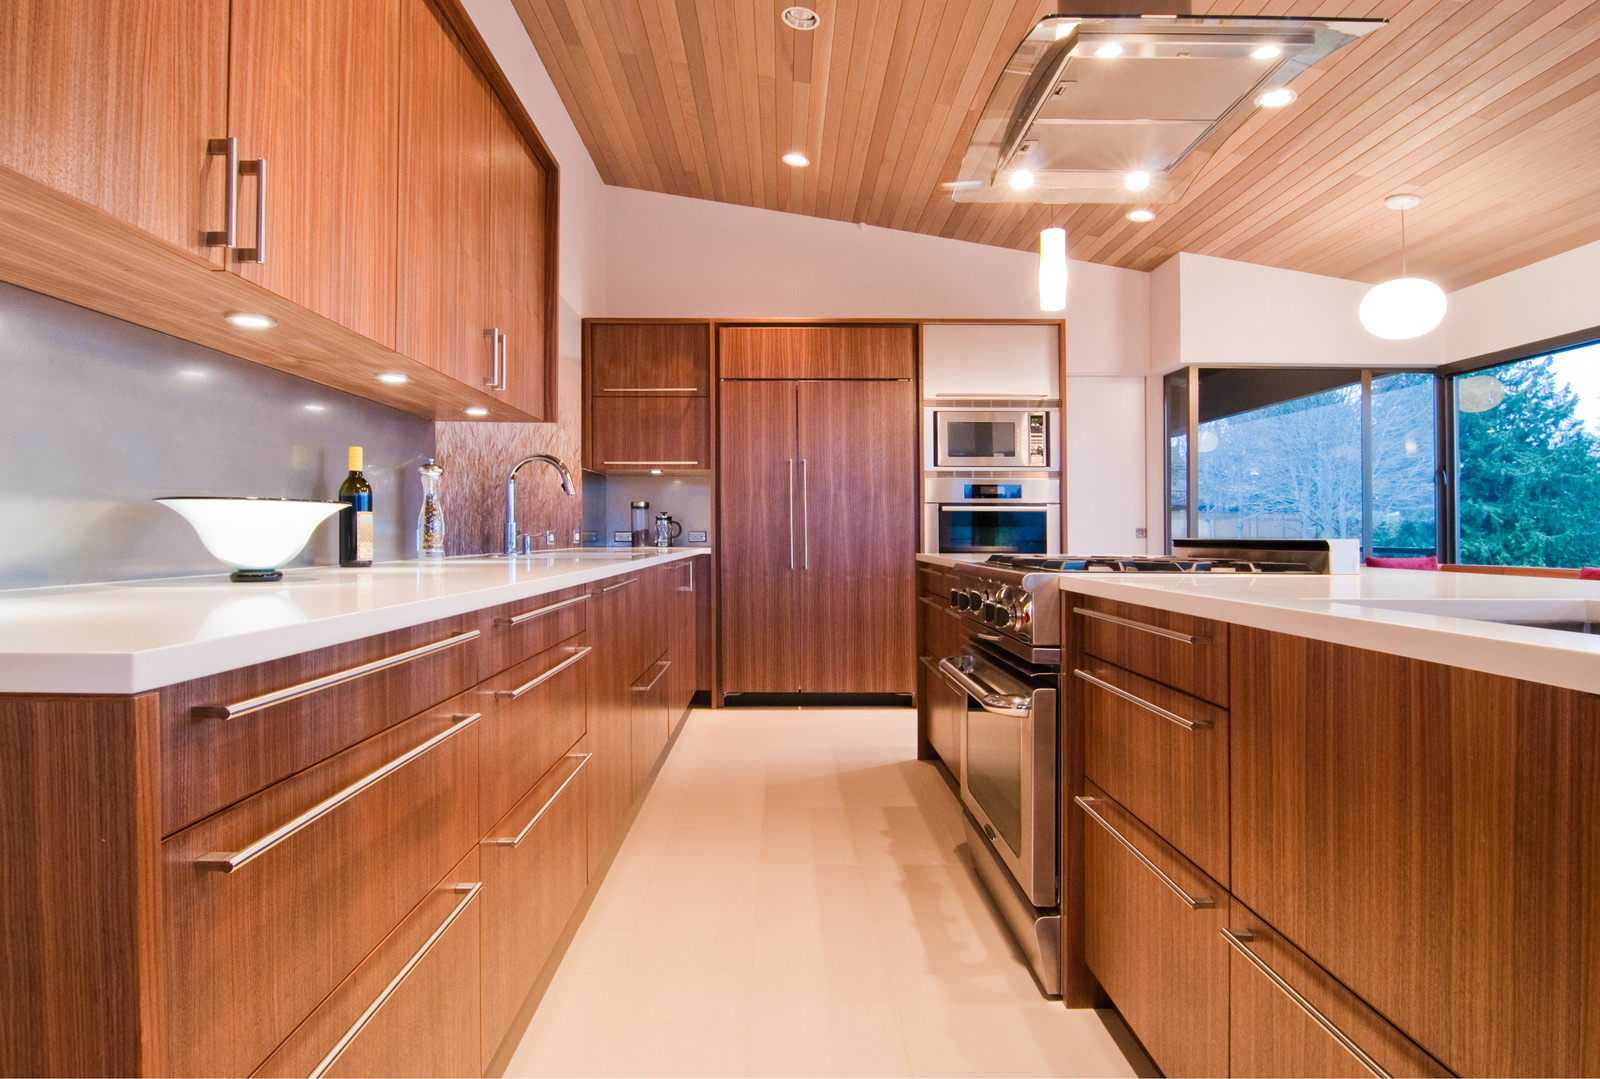 5 Modern Kitchen Designs amp Principles BUILD Blog